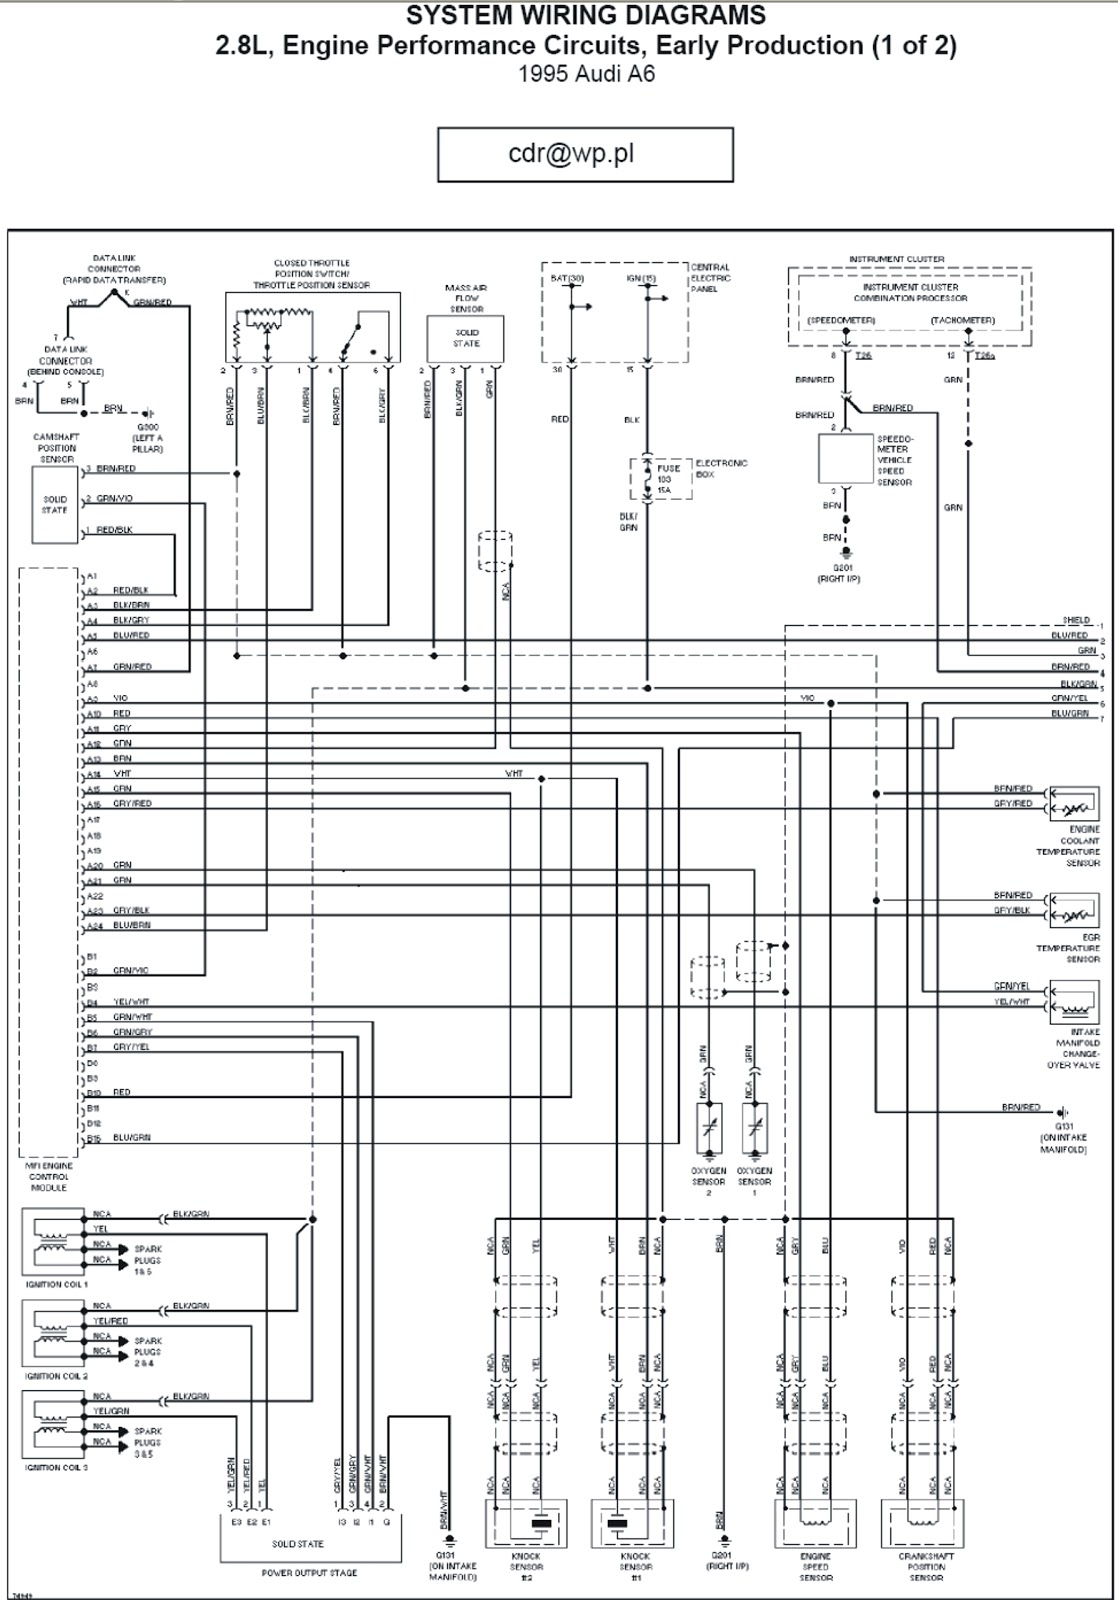 DIAGRAM] Audi A3 Wiring Diagram FULL Version HD Quality Wiring Diagram -  DIAGRAMBASED.CINEMABREVE.ITCinema Breve